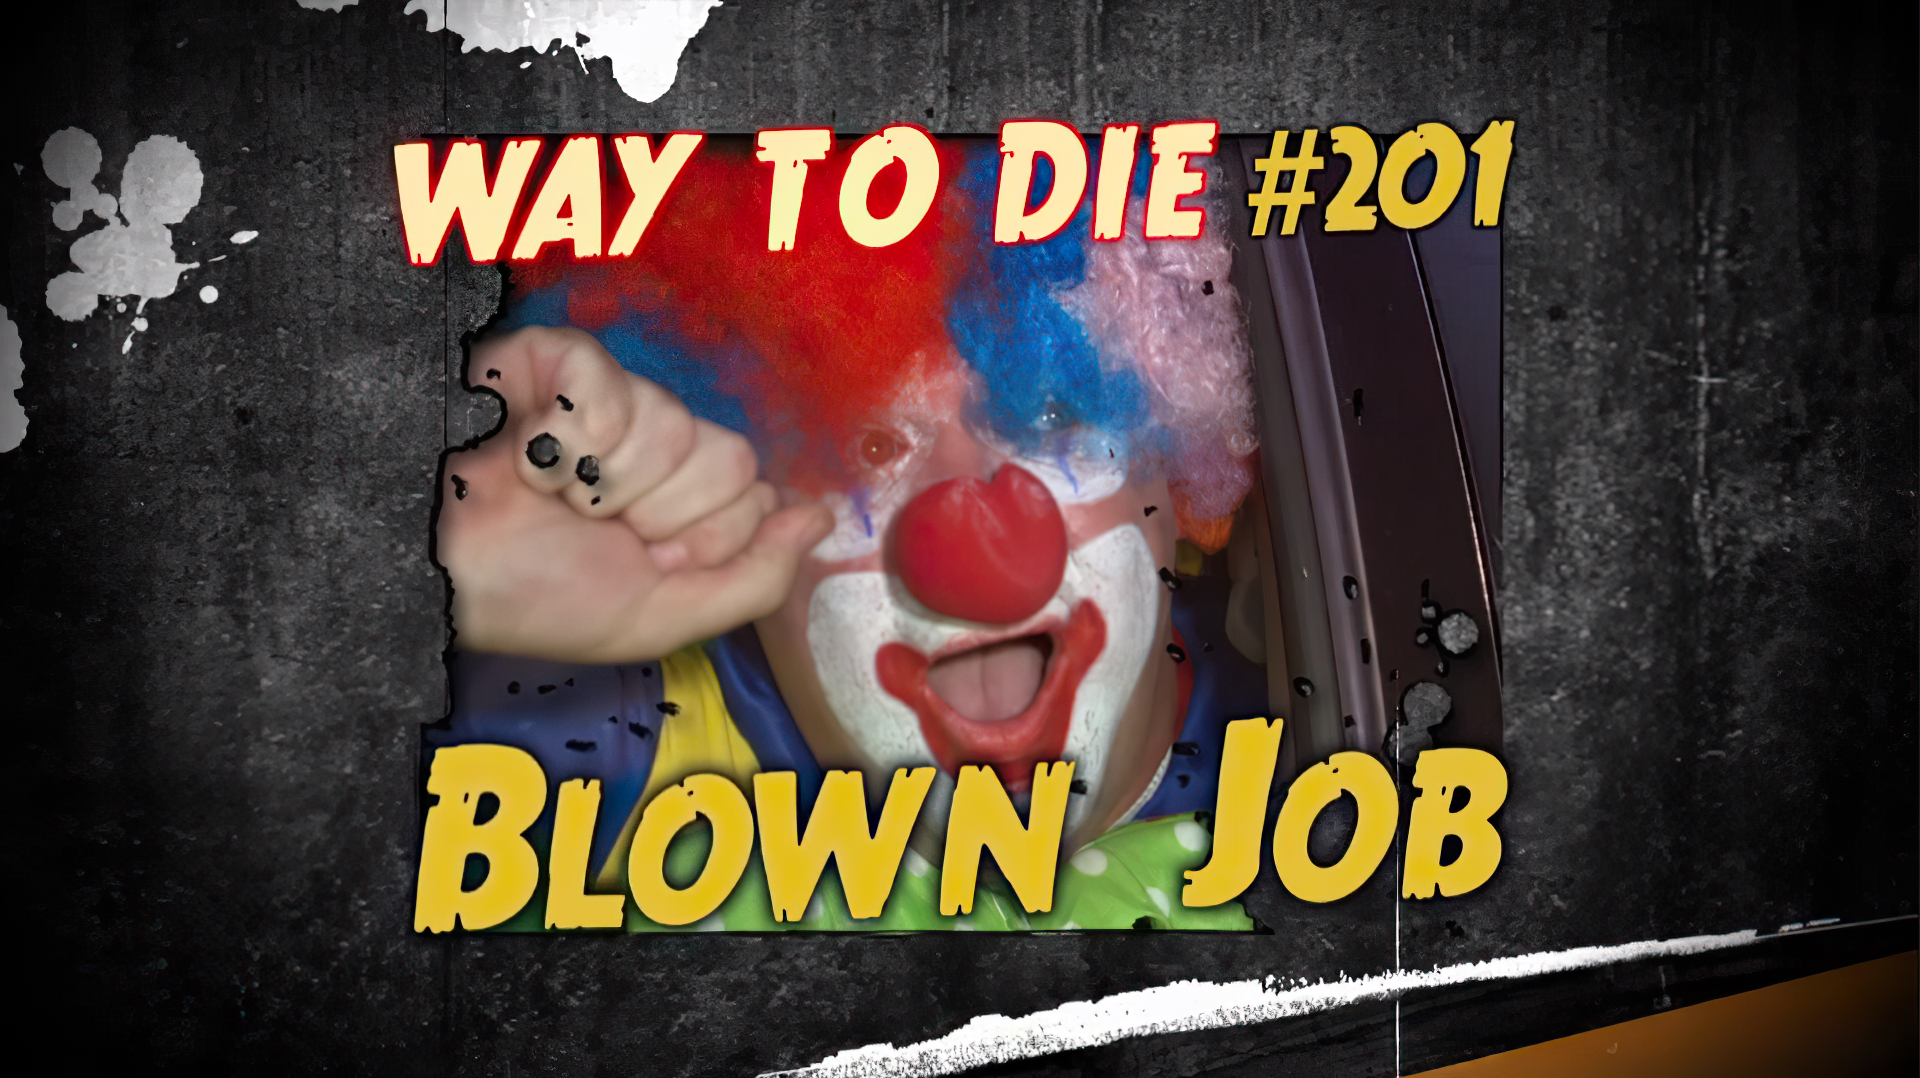 Blown Job (201)